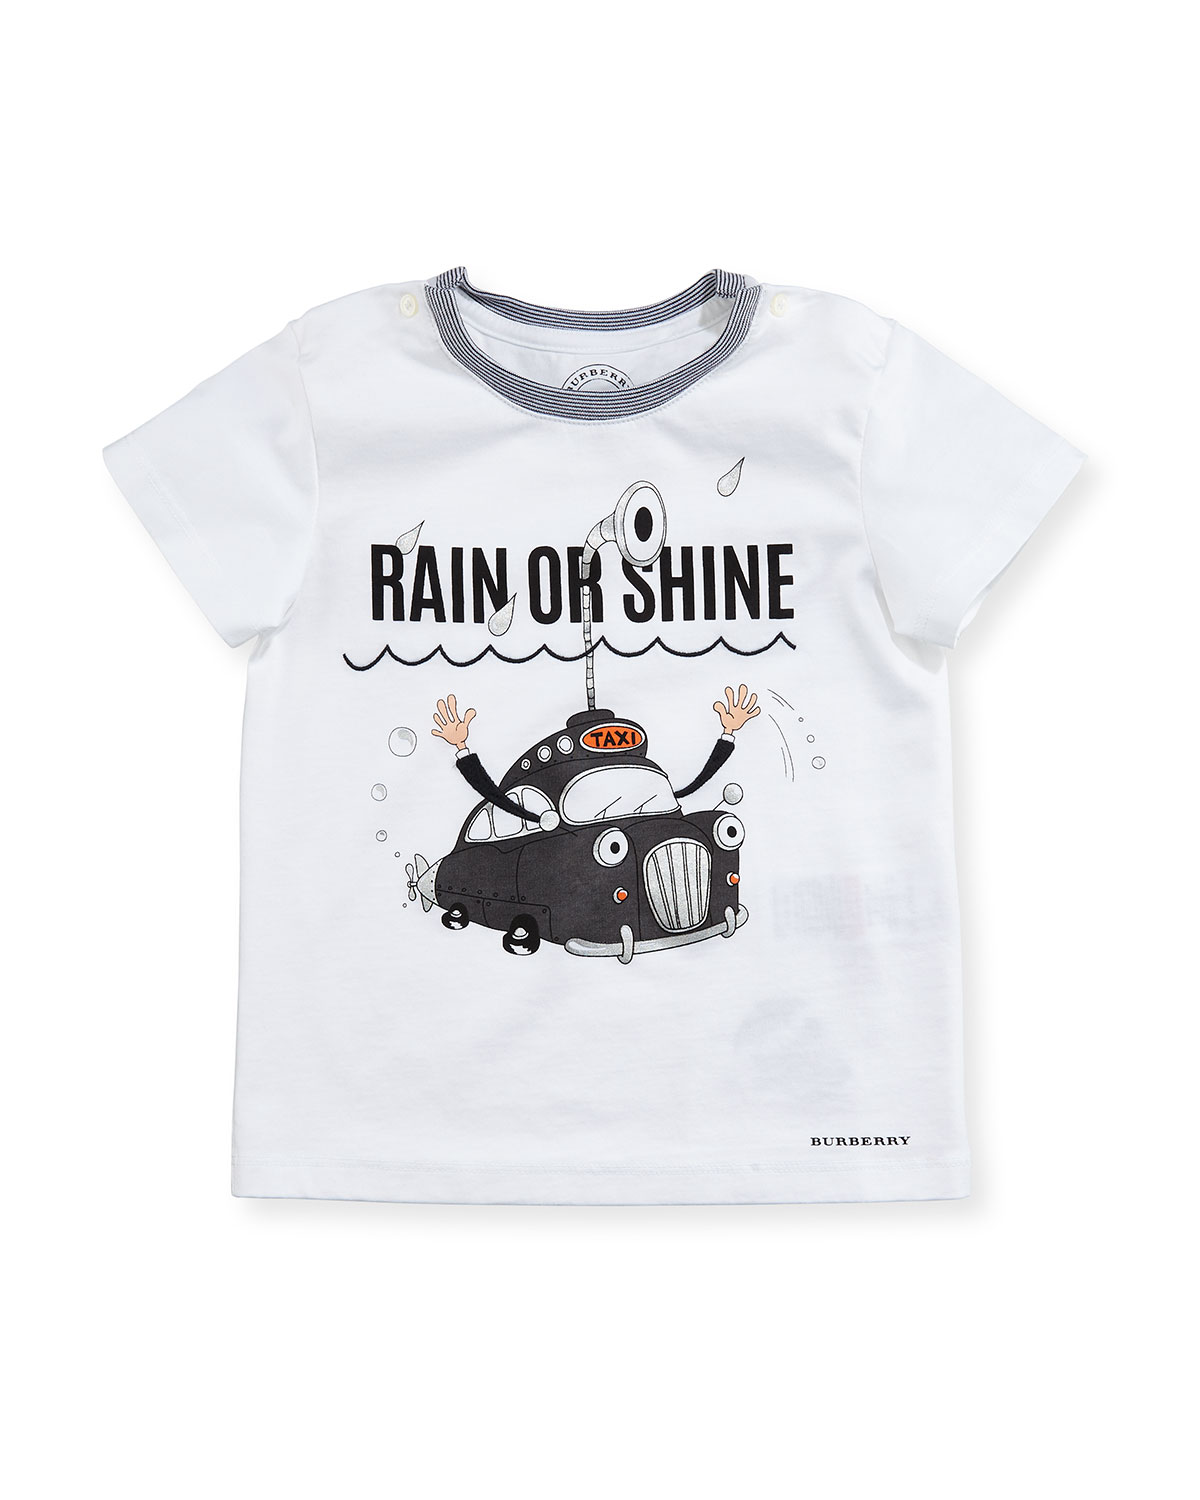 Rain or Shine Cotton T-Shirt, White, Infant/Toddler